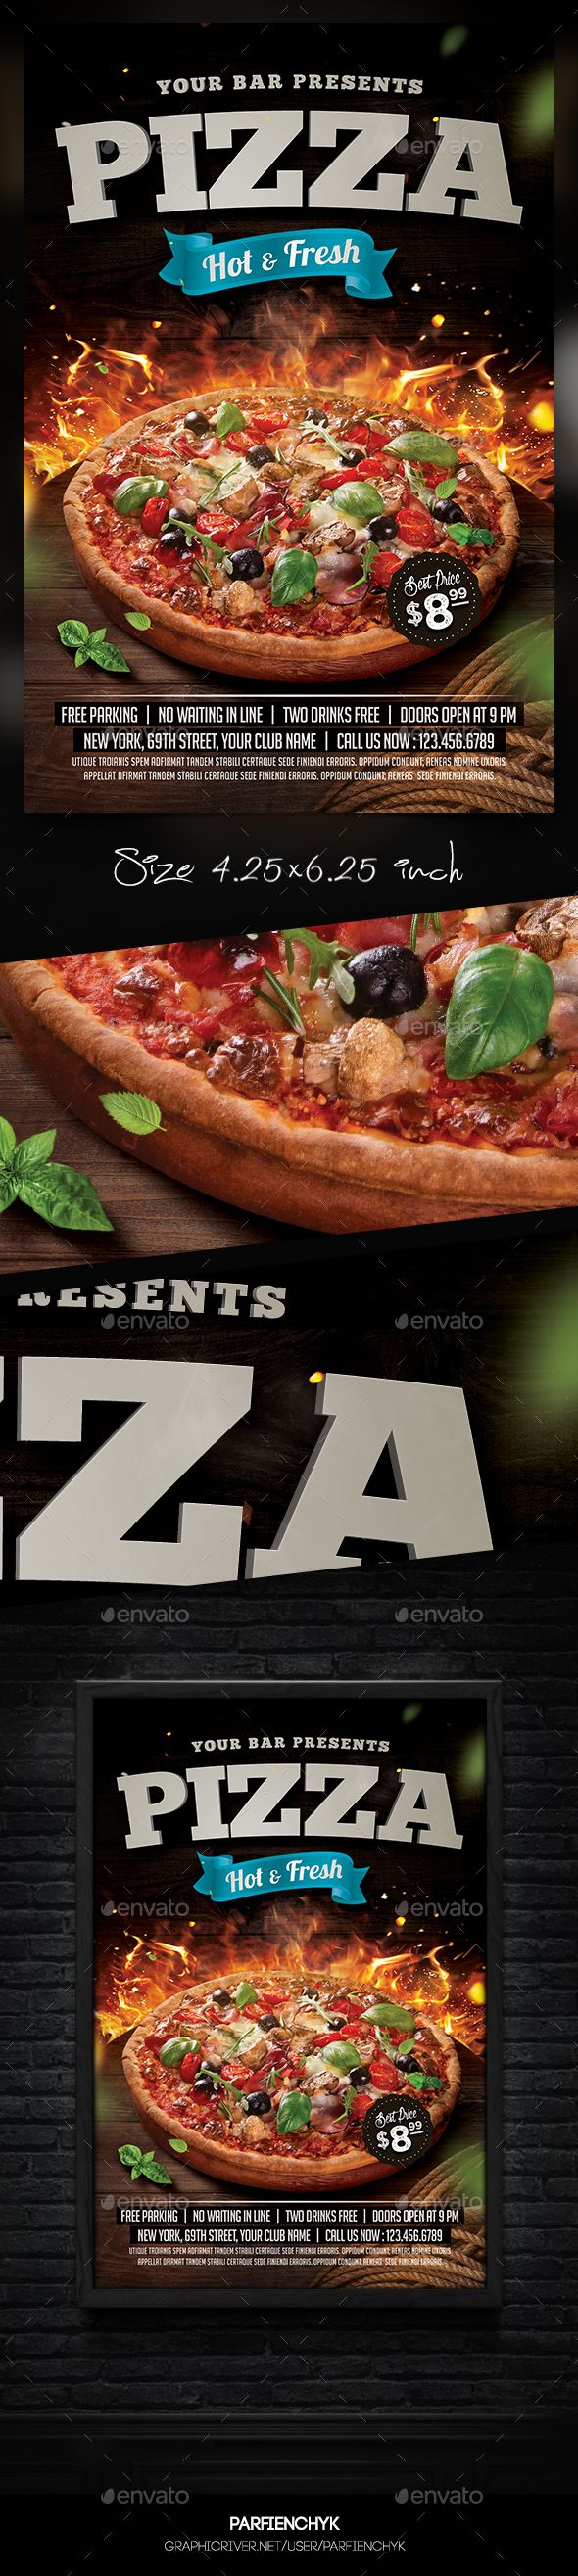 Pizza Flyer   PSD Template • Download ➝ https://graphicriver.net/item/pizza-flyer-template/17160667?ref=pxcr